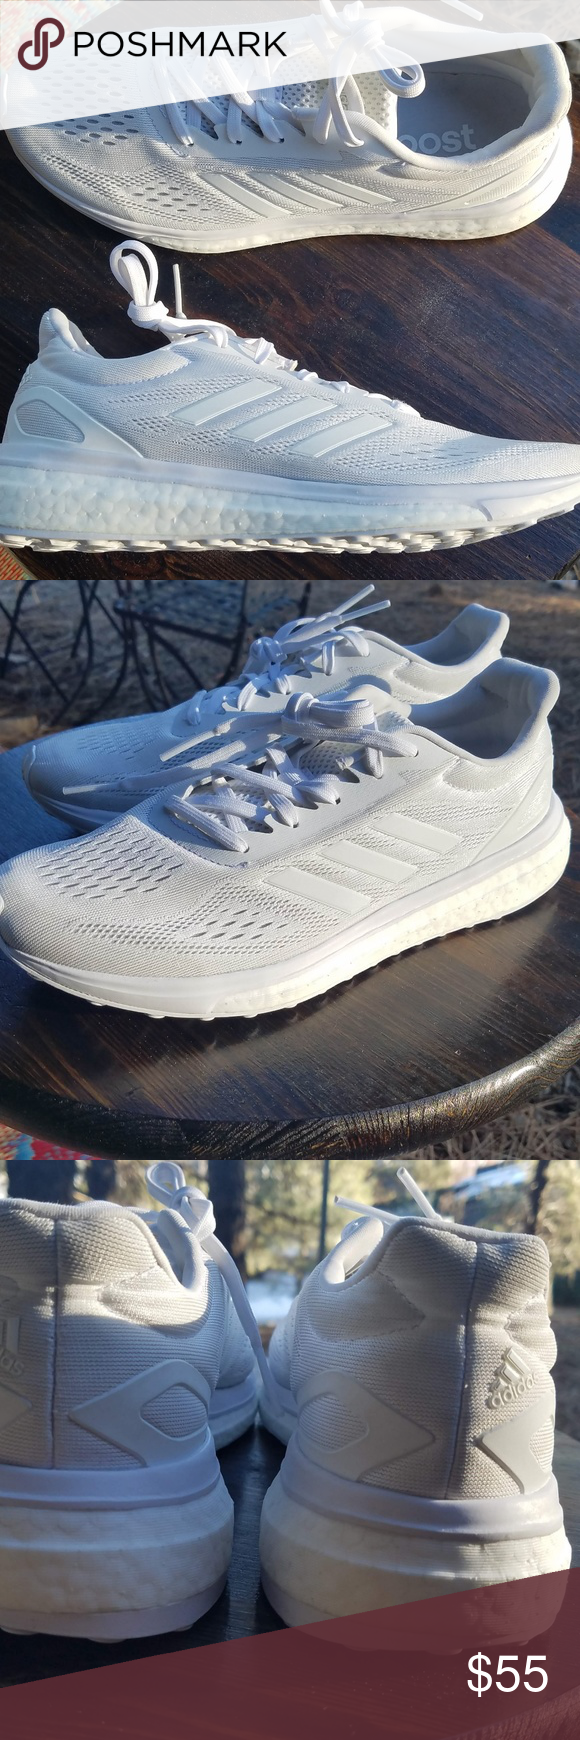 098bc18af4c Adidas Response Boost LT Running Shoes Unisex  Brand New and Never Used  Adidas  Response